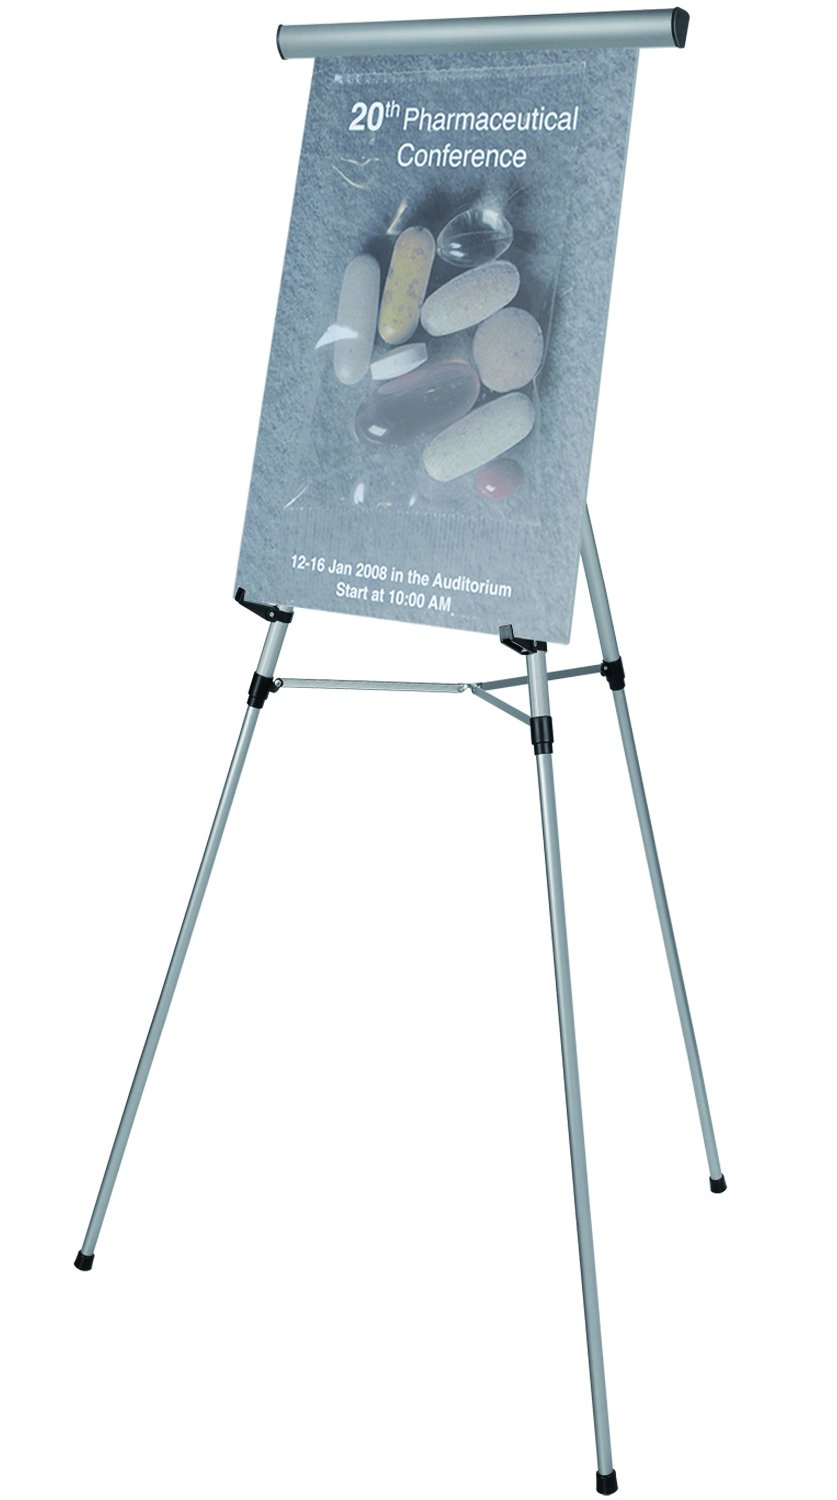 Bi-silque Visual Communication MasterVision 3-Leg Lightweight Telescoping Display Easel with Easel Pad Retainer, Black FLX09101MV